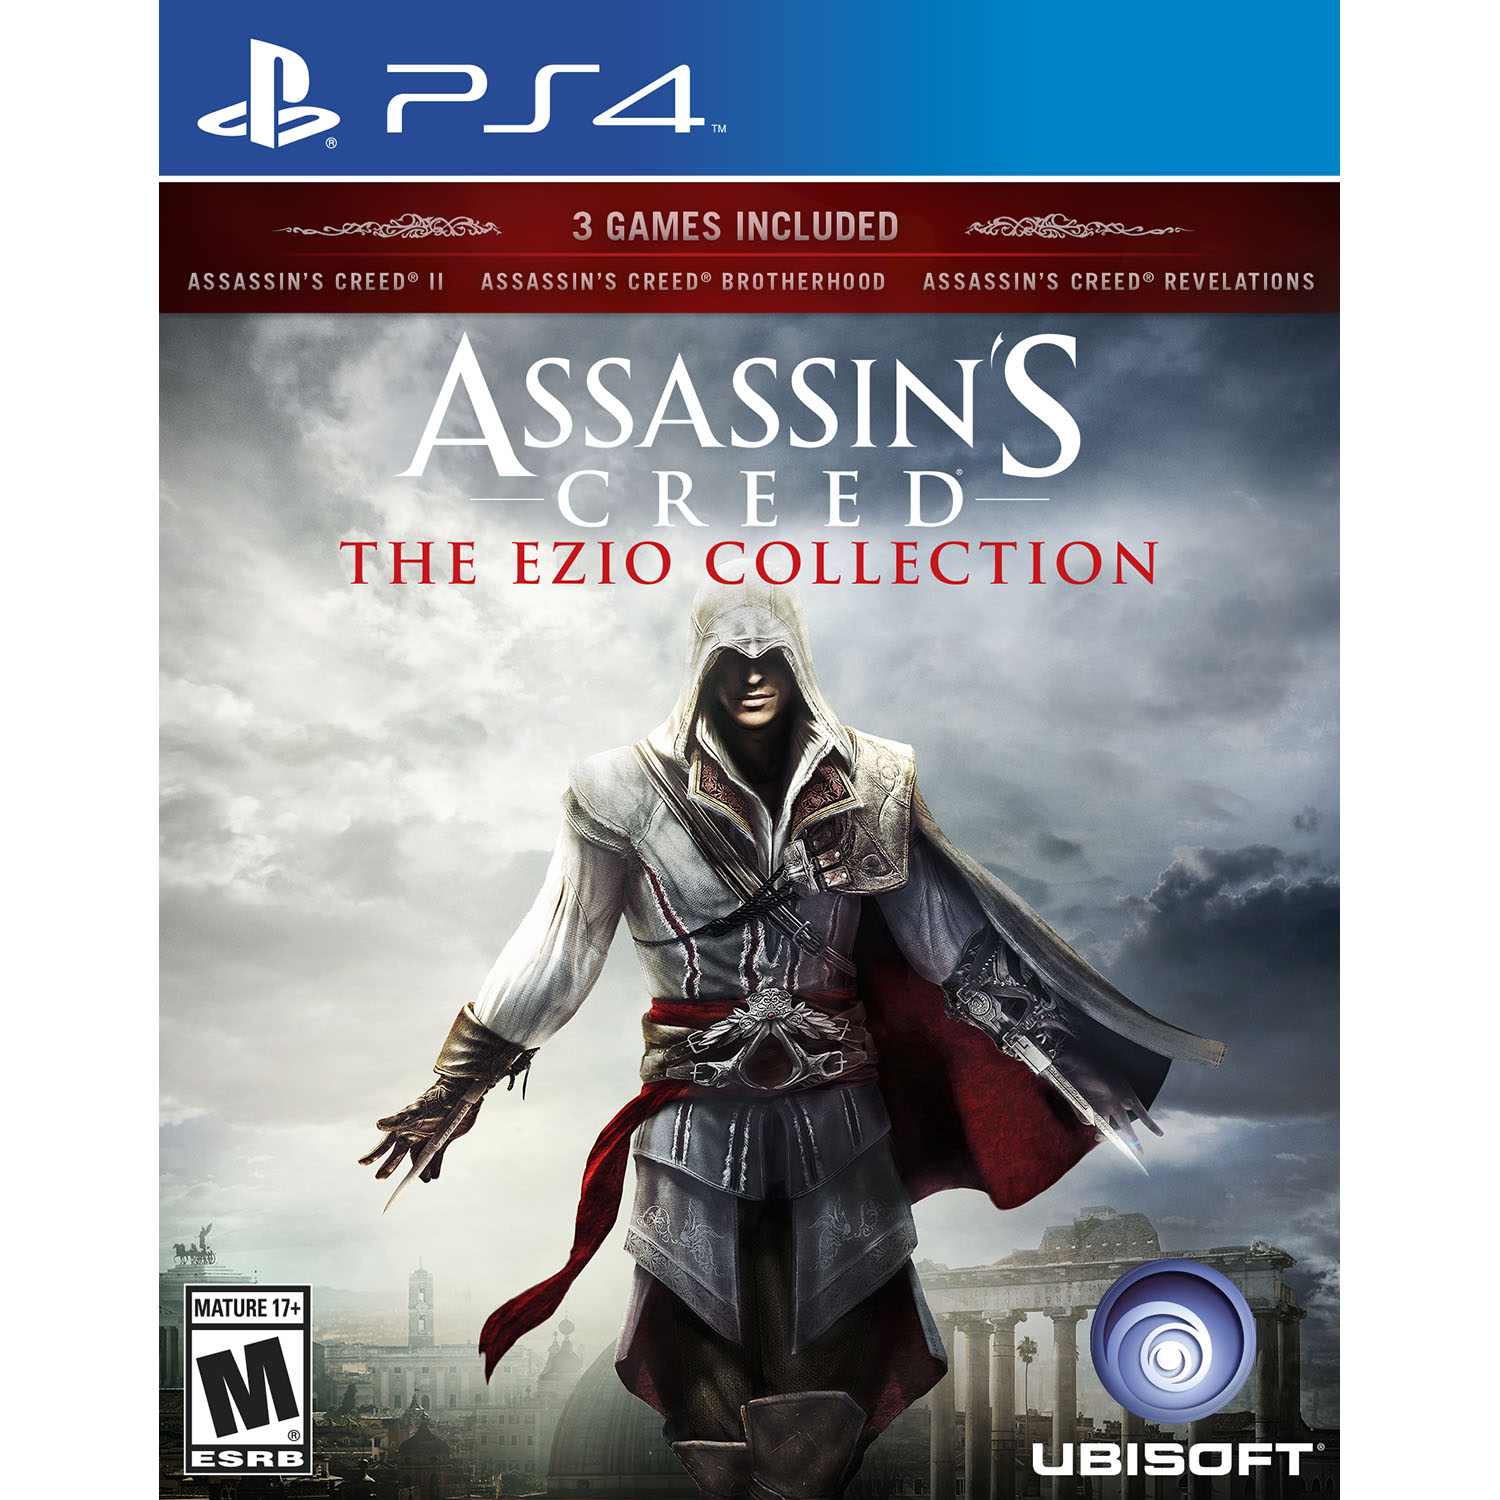 Assassins Creed Ezio Collection - Pre-Owned (PS4)